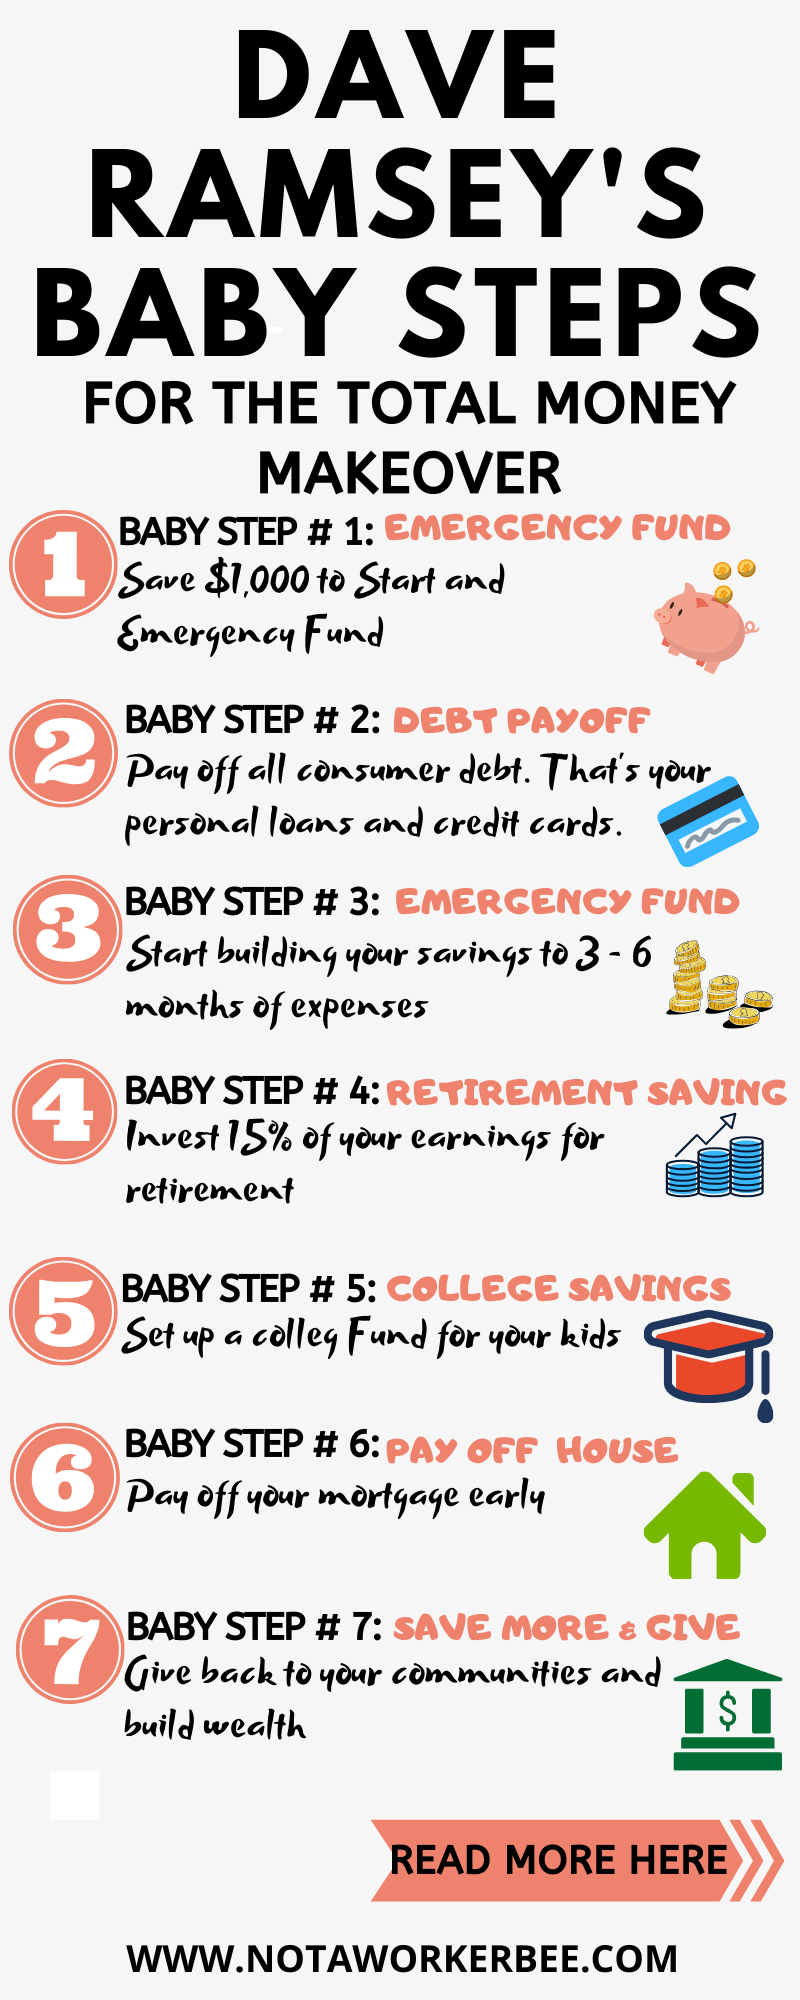 How Dave Ramsey's Baby Steps Saved My Life (With images